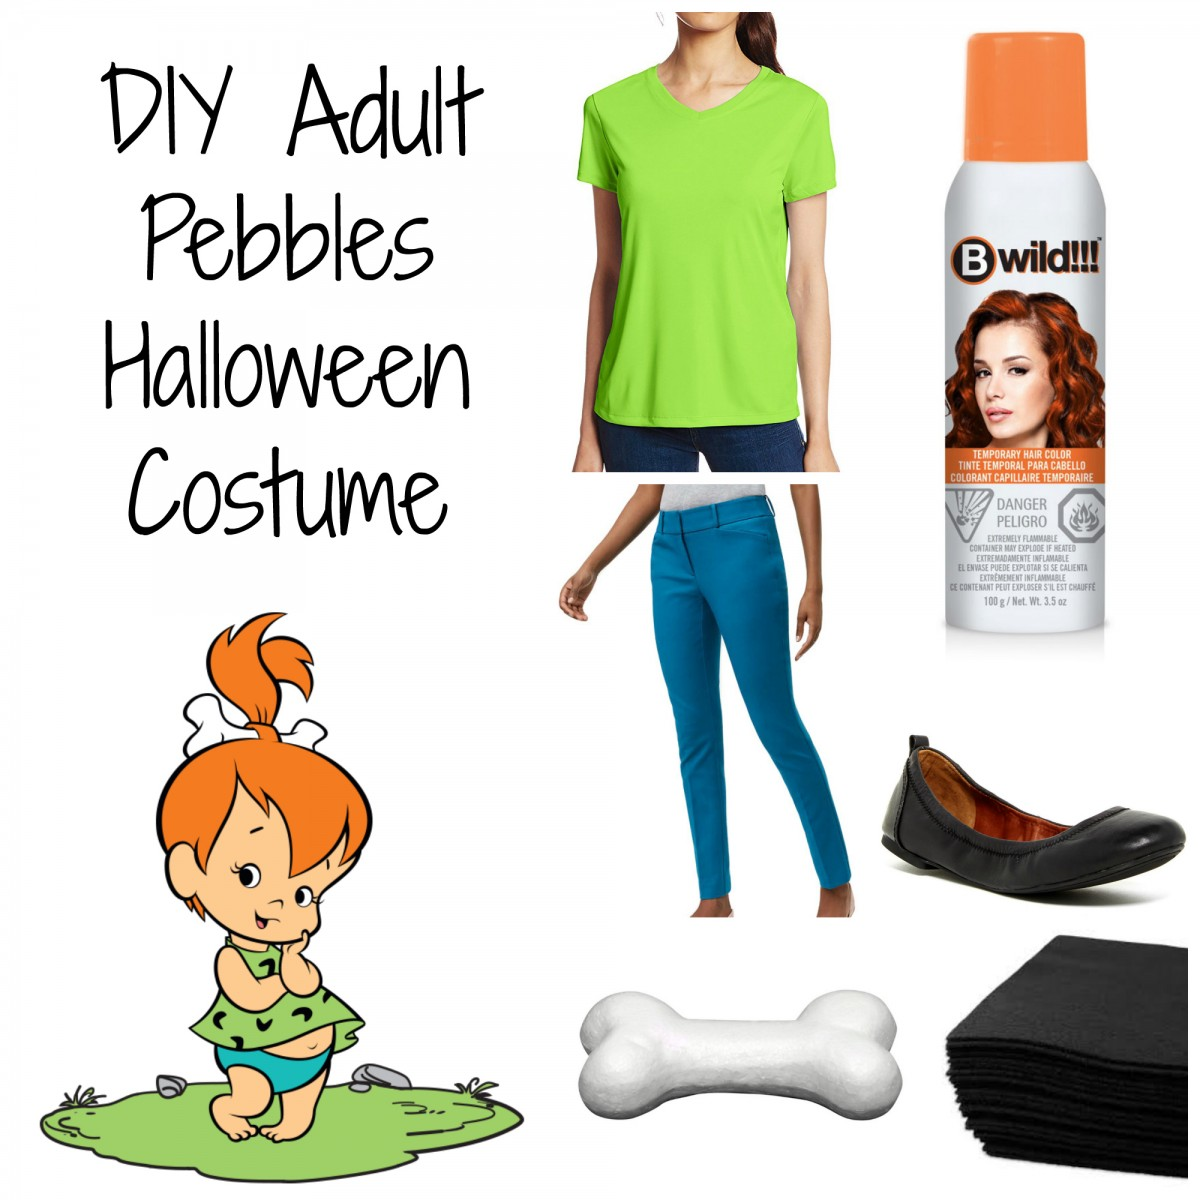 DIY Adult Pebbles Halloween Costume Her Heartland Soul  sc 1 st  Her Heartland Soul & DIY Adult Pebbles Halloween Costume - Her Heartland Soul